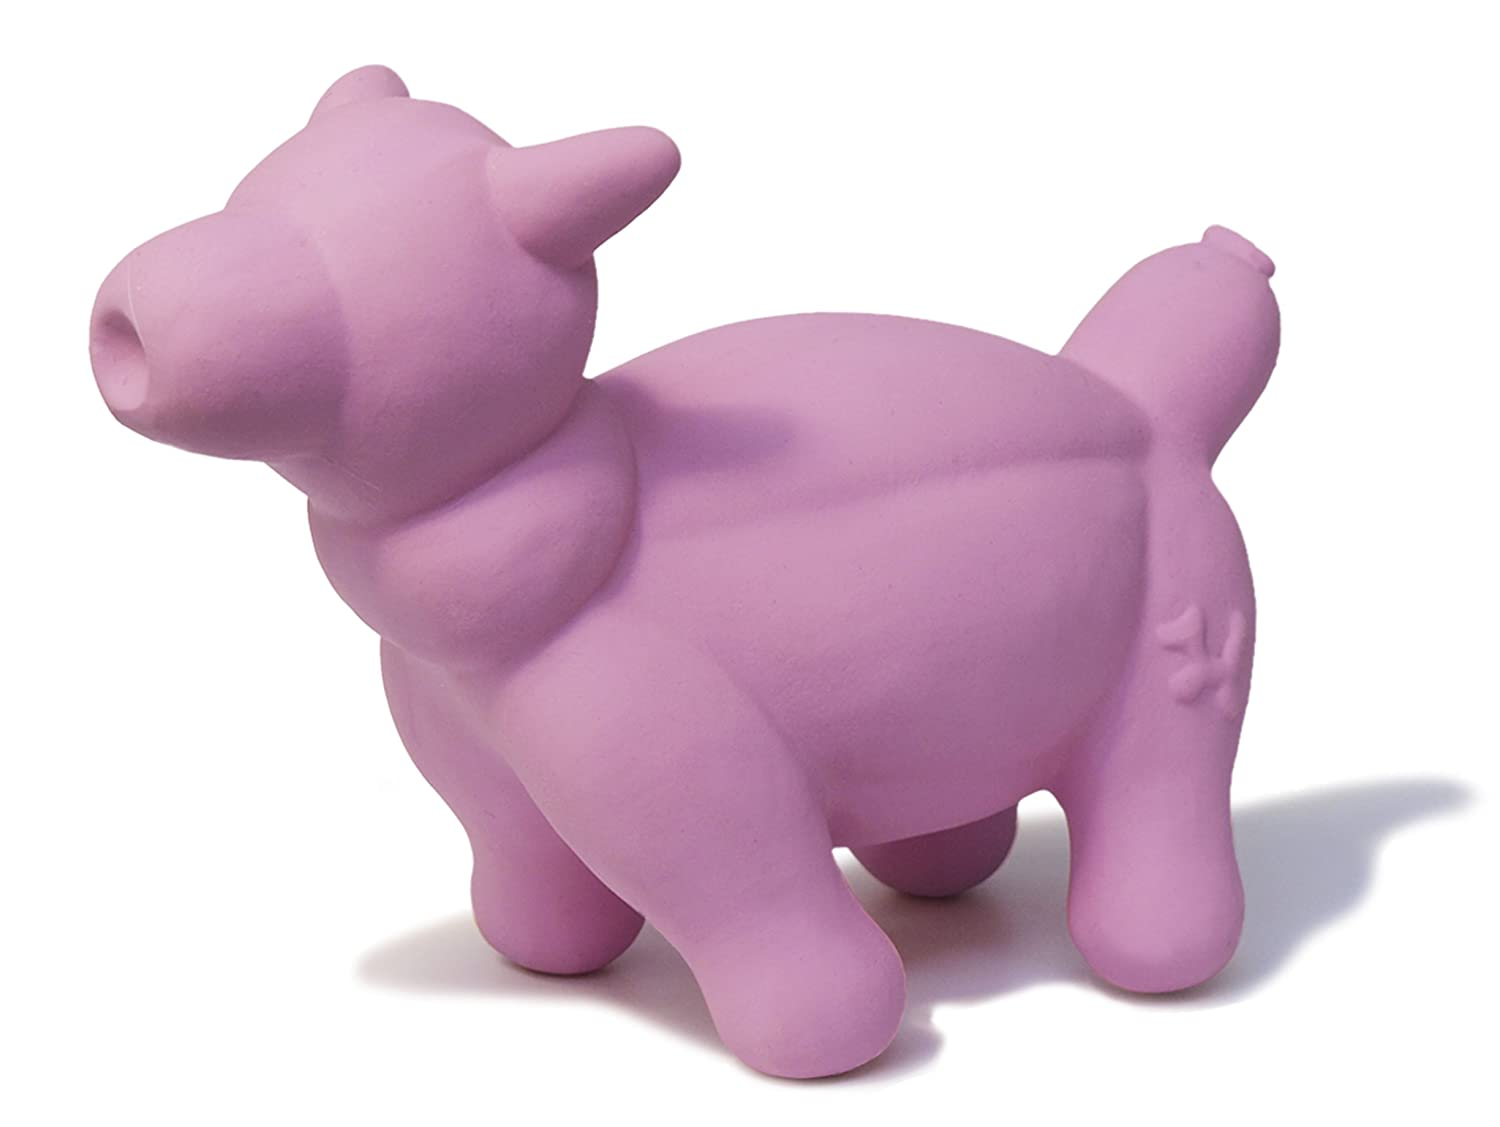 Charming Pet Latex Dog Toy Balloon, Elephant, Small Charming Pet Products 79953S YCP1052_6972819